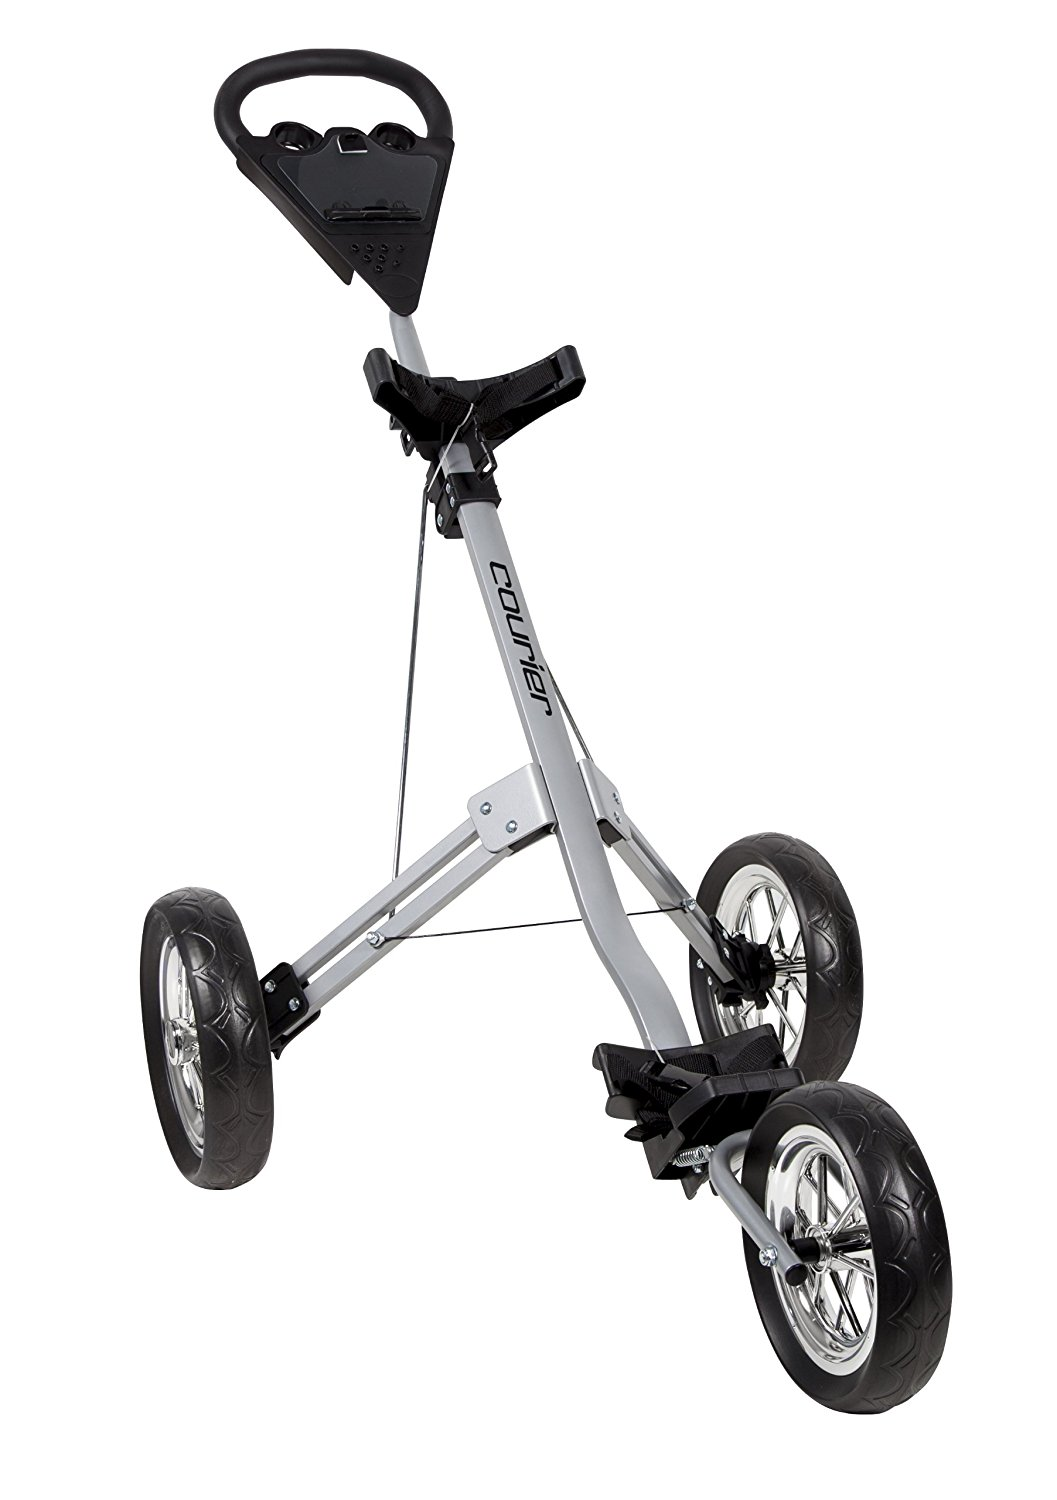 Pinemeadow Courier Crusier 3 Wheel Golf Push Carts